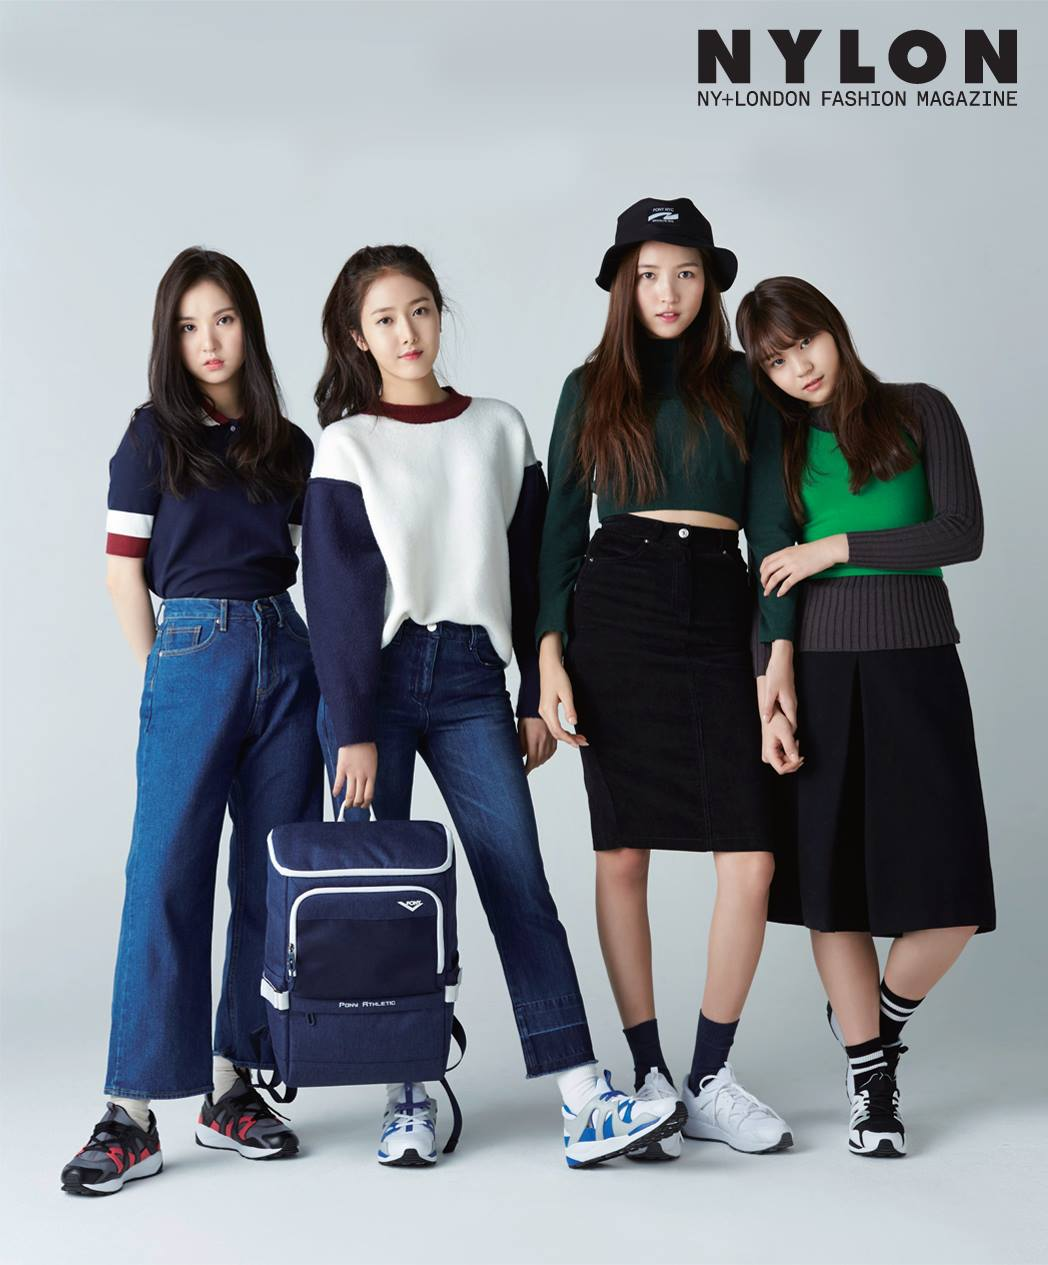 Image: Nylon Korea's Facebook